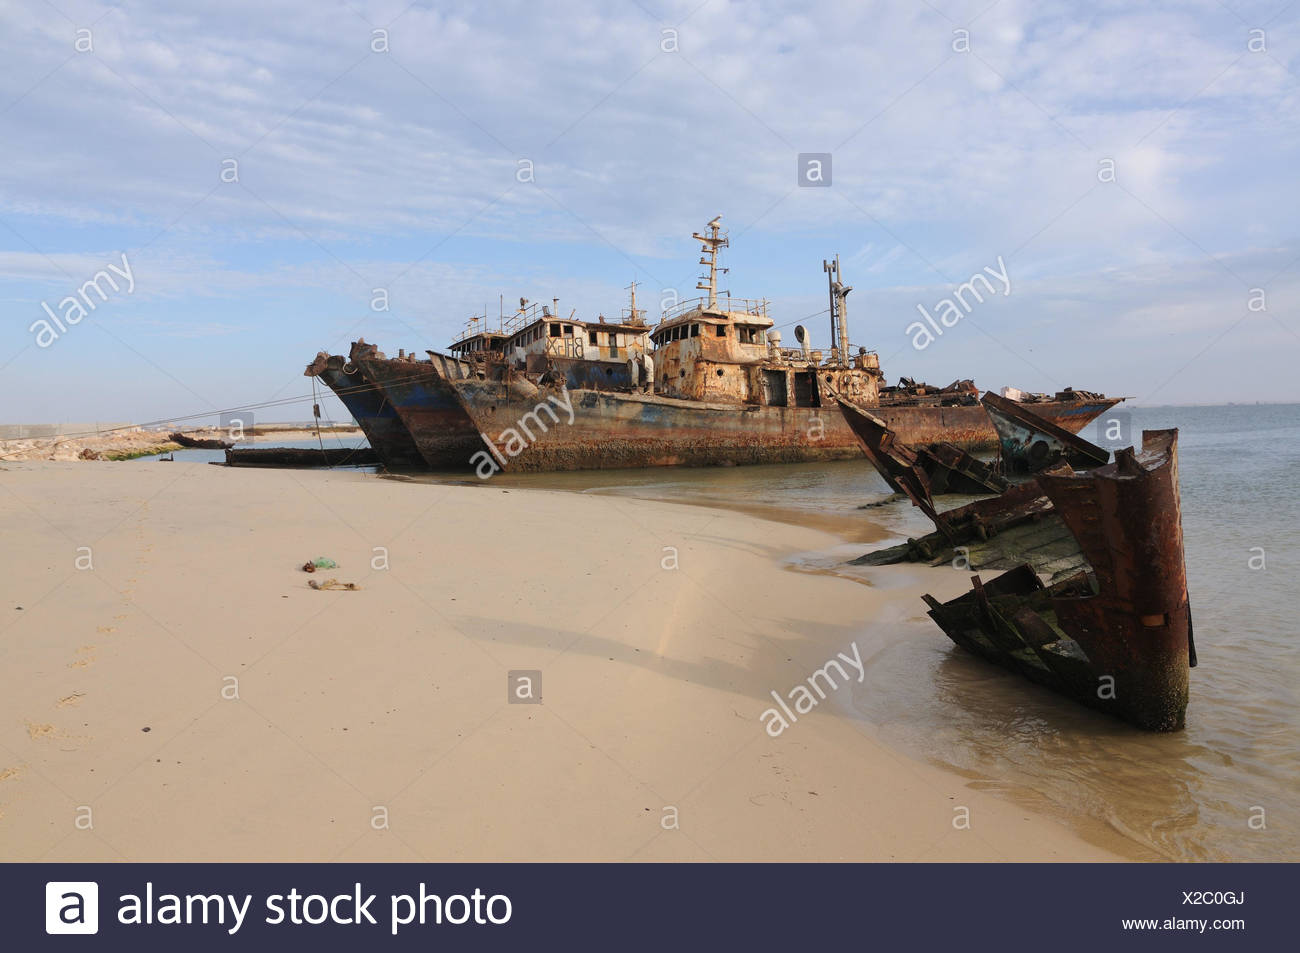 Mauritania,Nouadhibou,Cap Blanc,coast,ship wrecks,stranded,ships,ship cemetery,West Africa,Africa,old,the Atlantic,freighters,sea,navigation,hazy,water,rusts,water,wreck,environmental pollution, - Stock Image